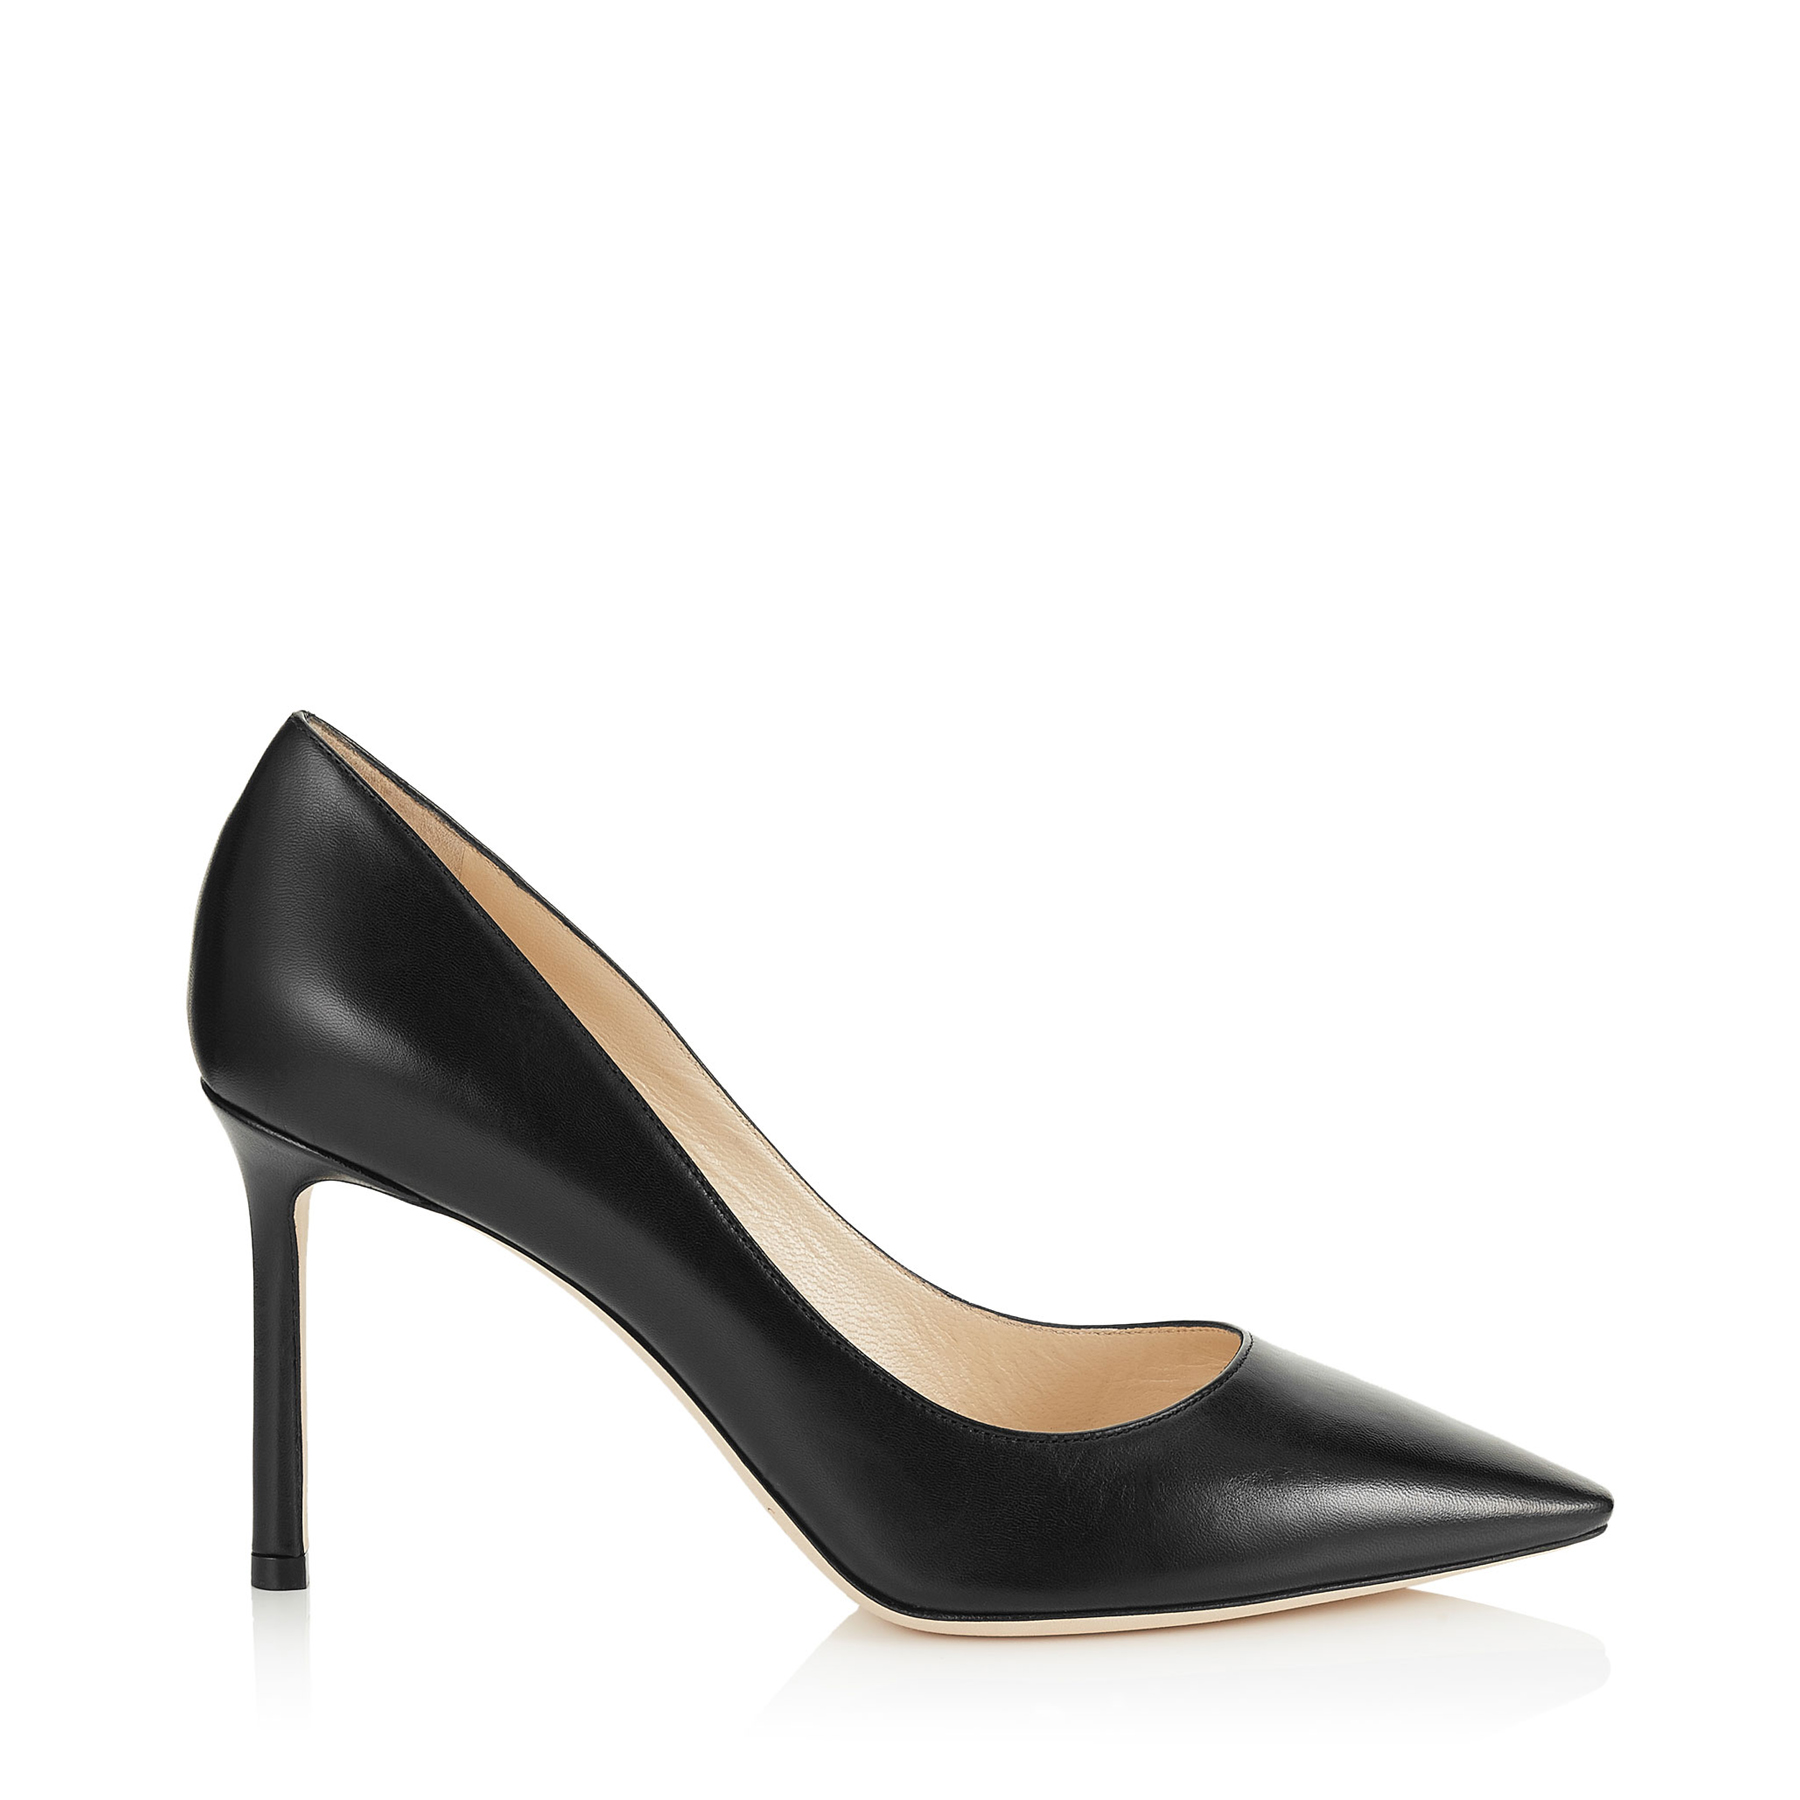 ROMY 85 Black Kid Leather Pointy Toe Pumps by Jimmy Choo